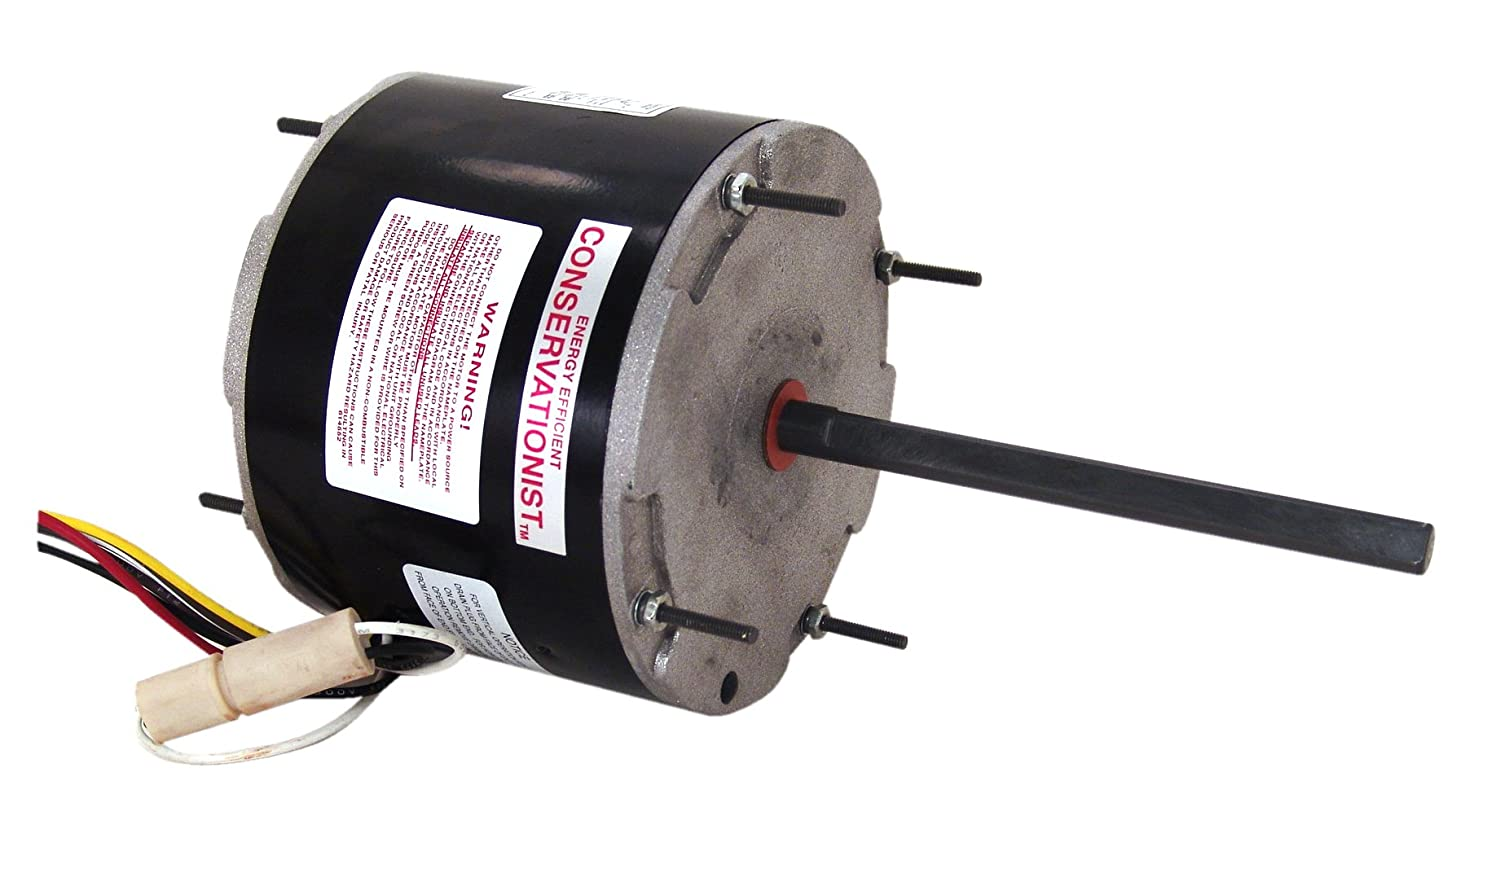 A.O. Smith FE1036SC 1/3 HP, 1075 RPM, 1075 volts, 2.6 Amps, 48Y Frame, Ball  Bearing Condenser Motor - Electric Fan Motors - Amazon.com